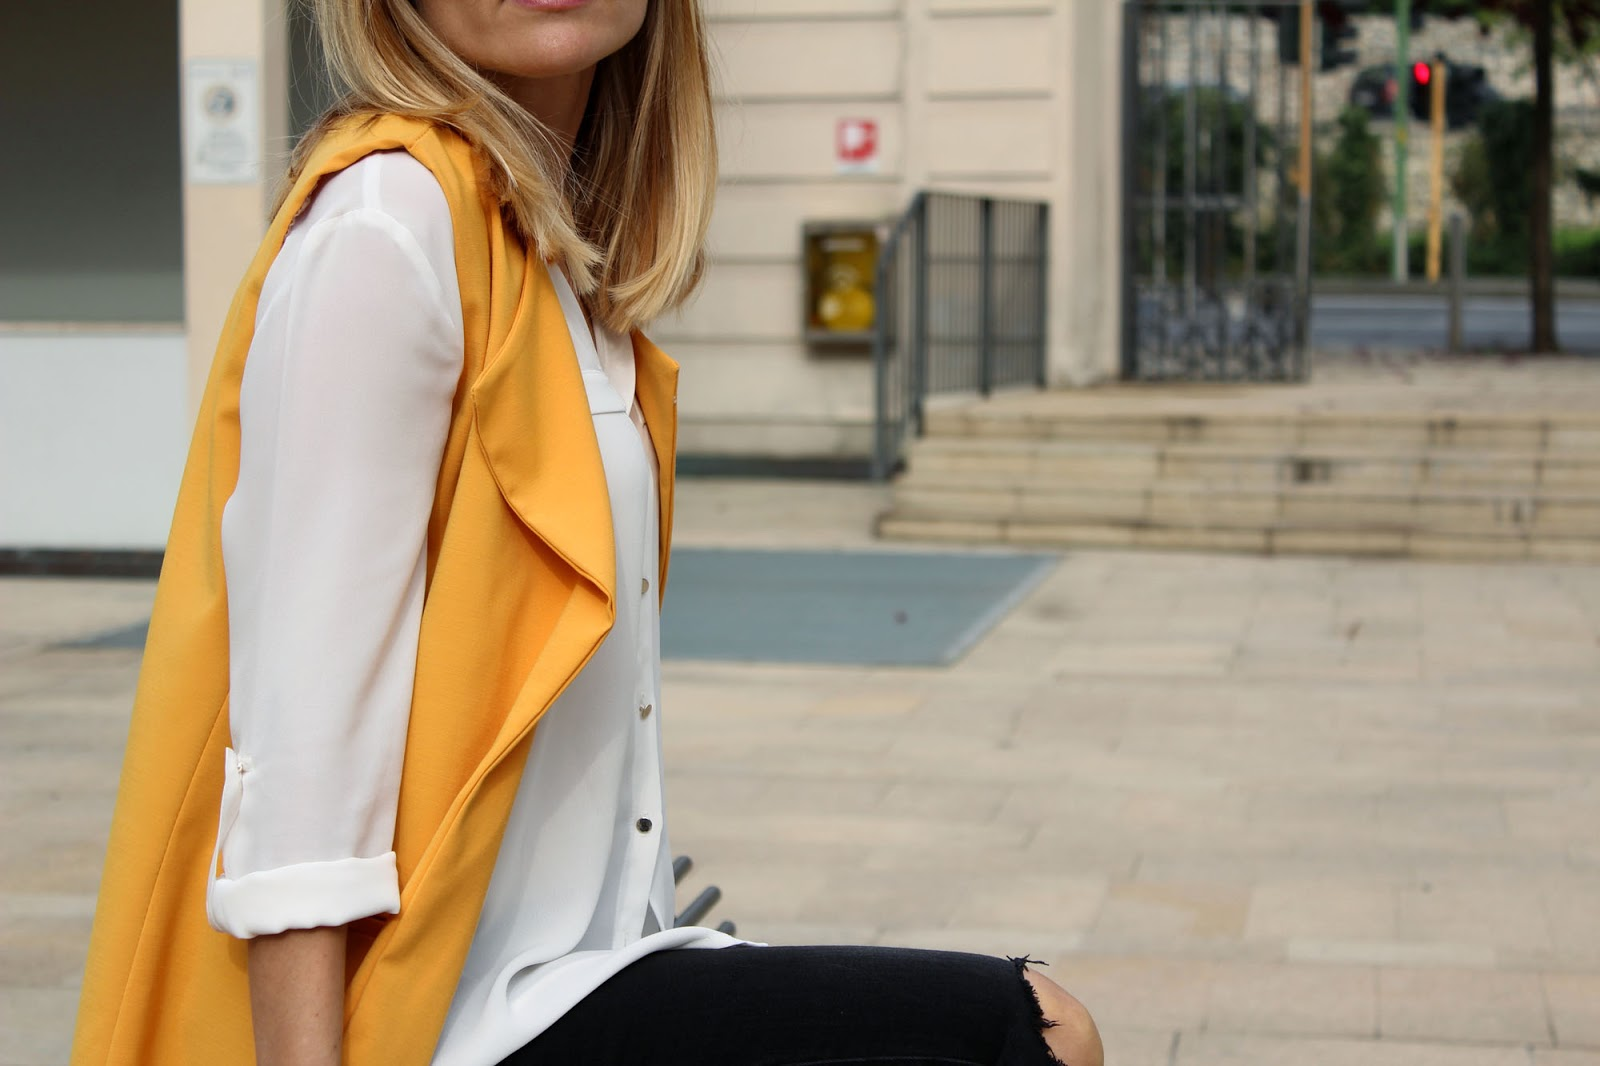 Eniwhere Fashion - Sheinside yellow coat - cappottino giallo-arancio